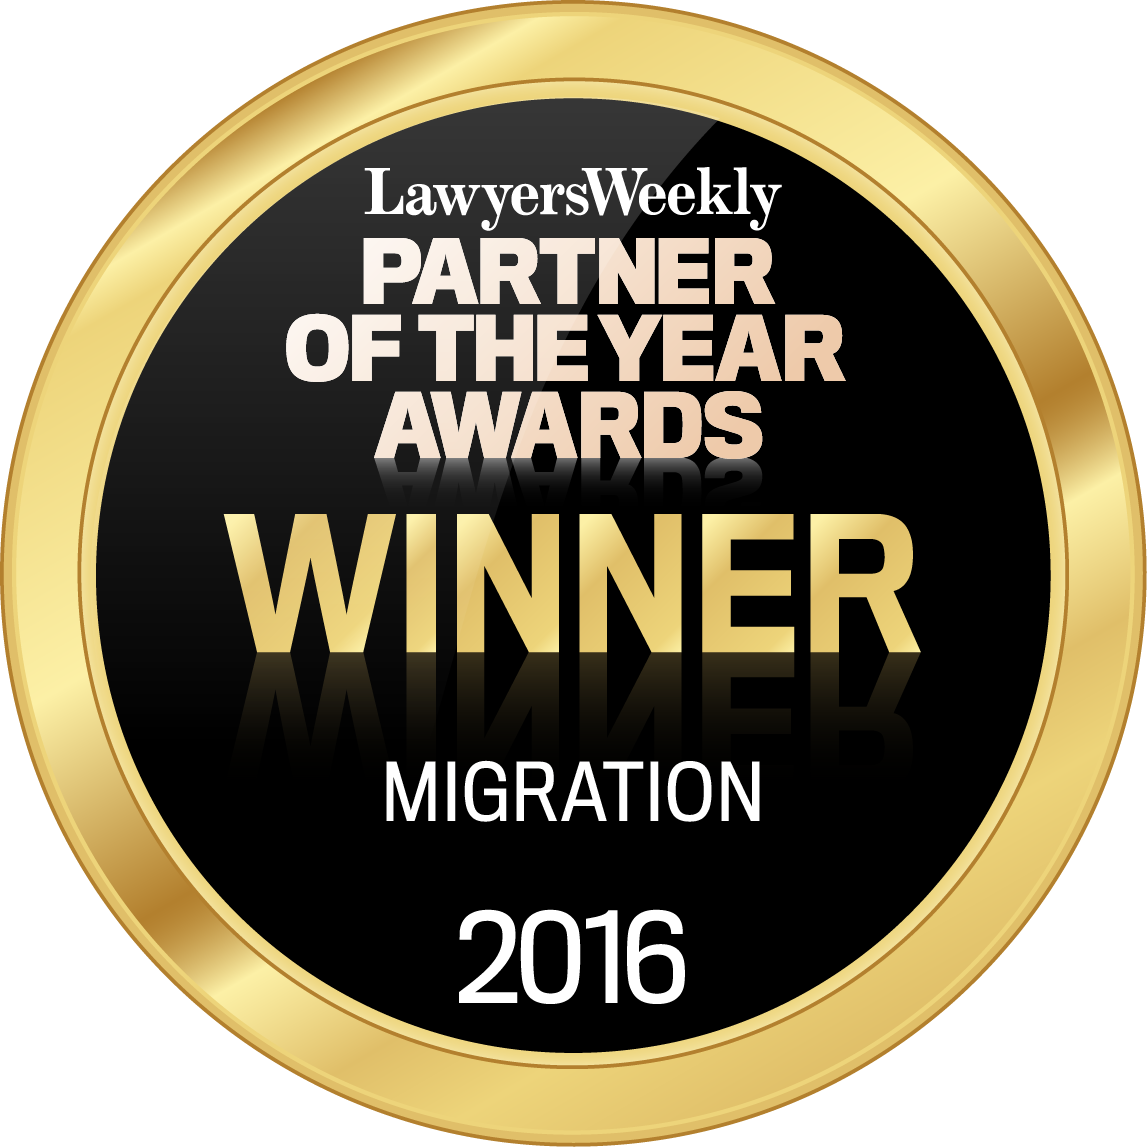 Lawyers Weekly Migration Winner 2016.png